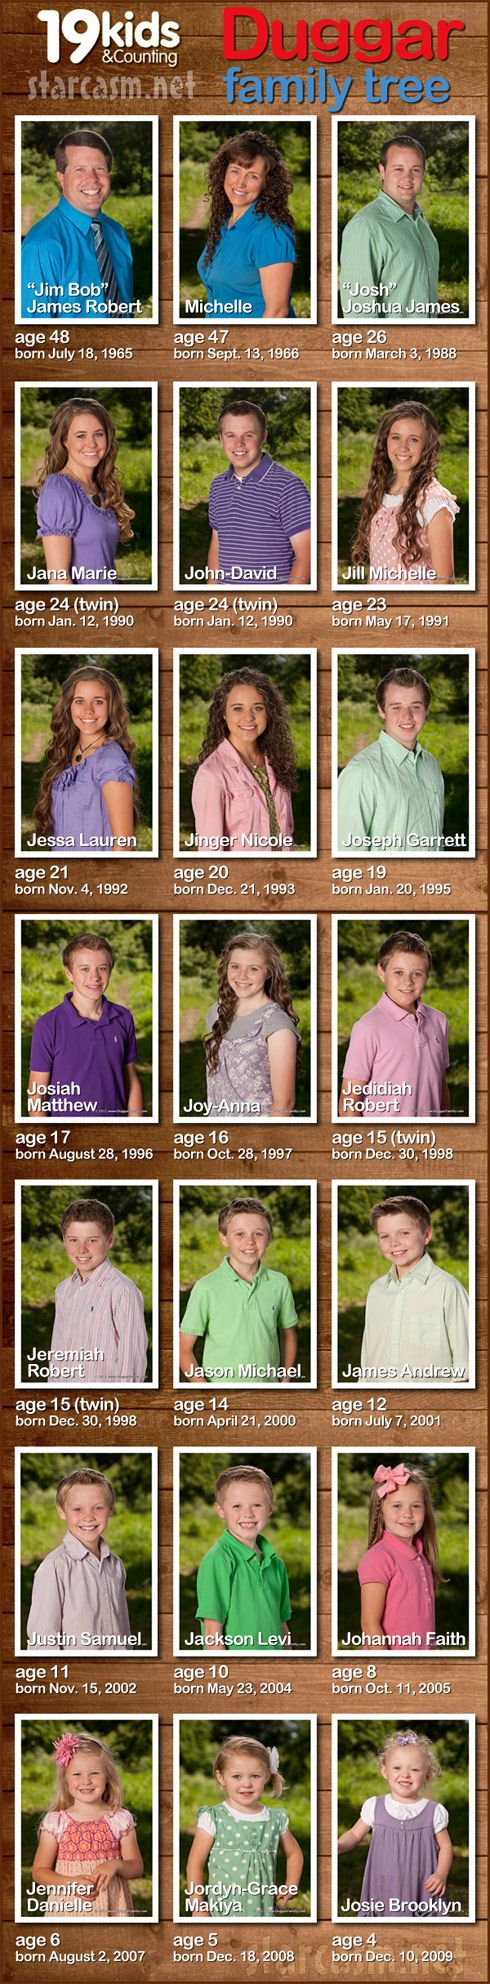 19 Kids and Counting Duggar Family Tree with birthdays and ages